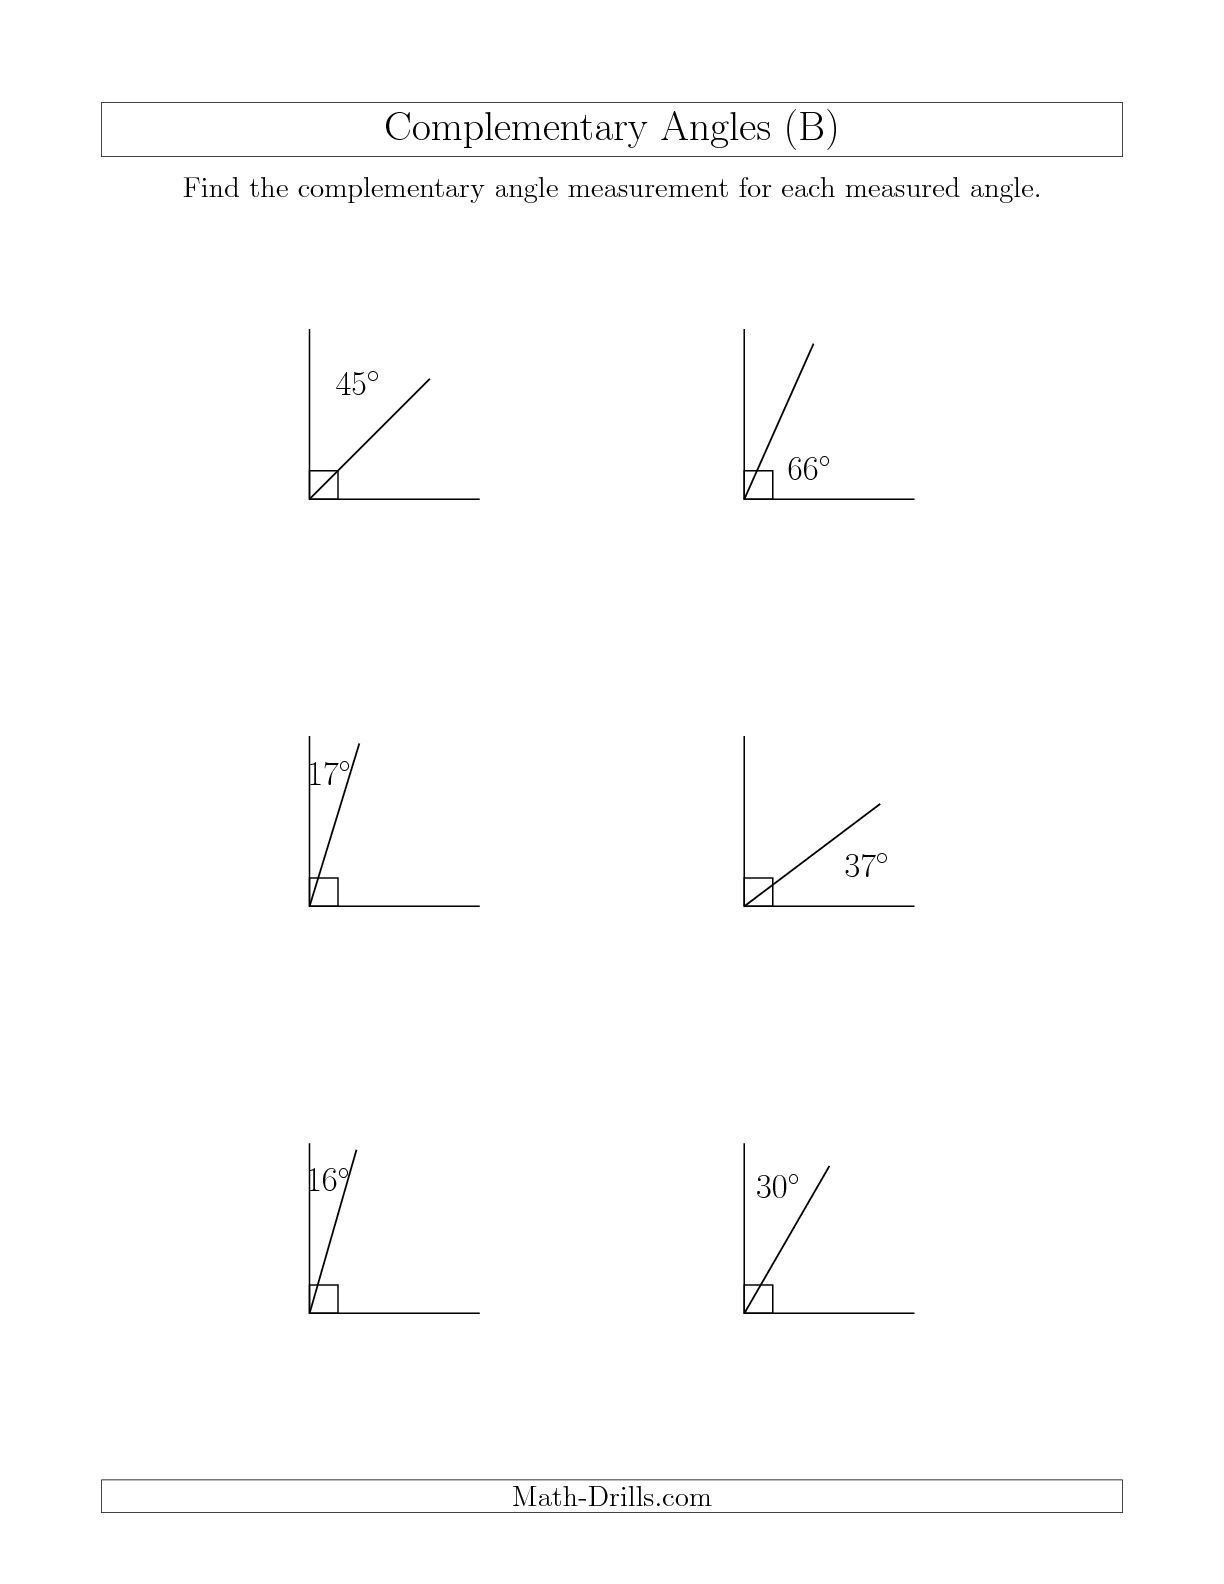 Angle Pair Relationships Worksheet Plementary Angle